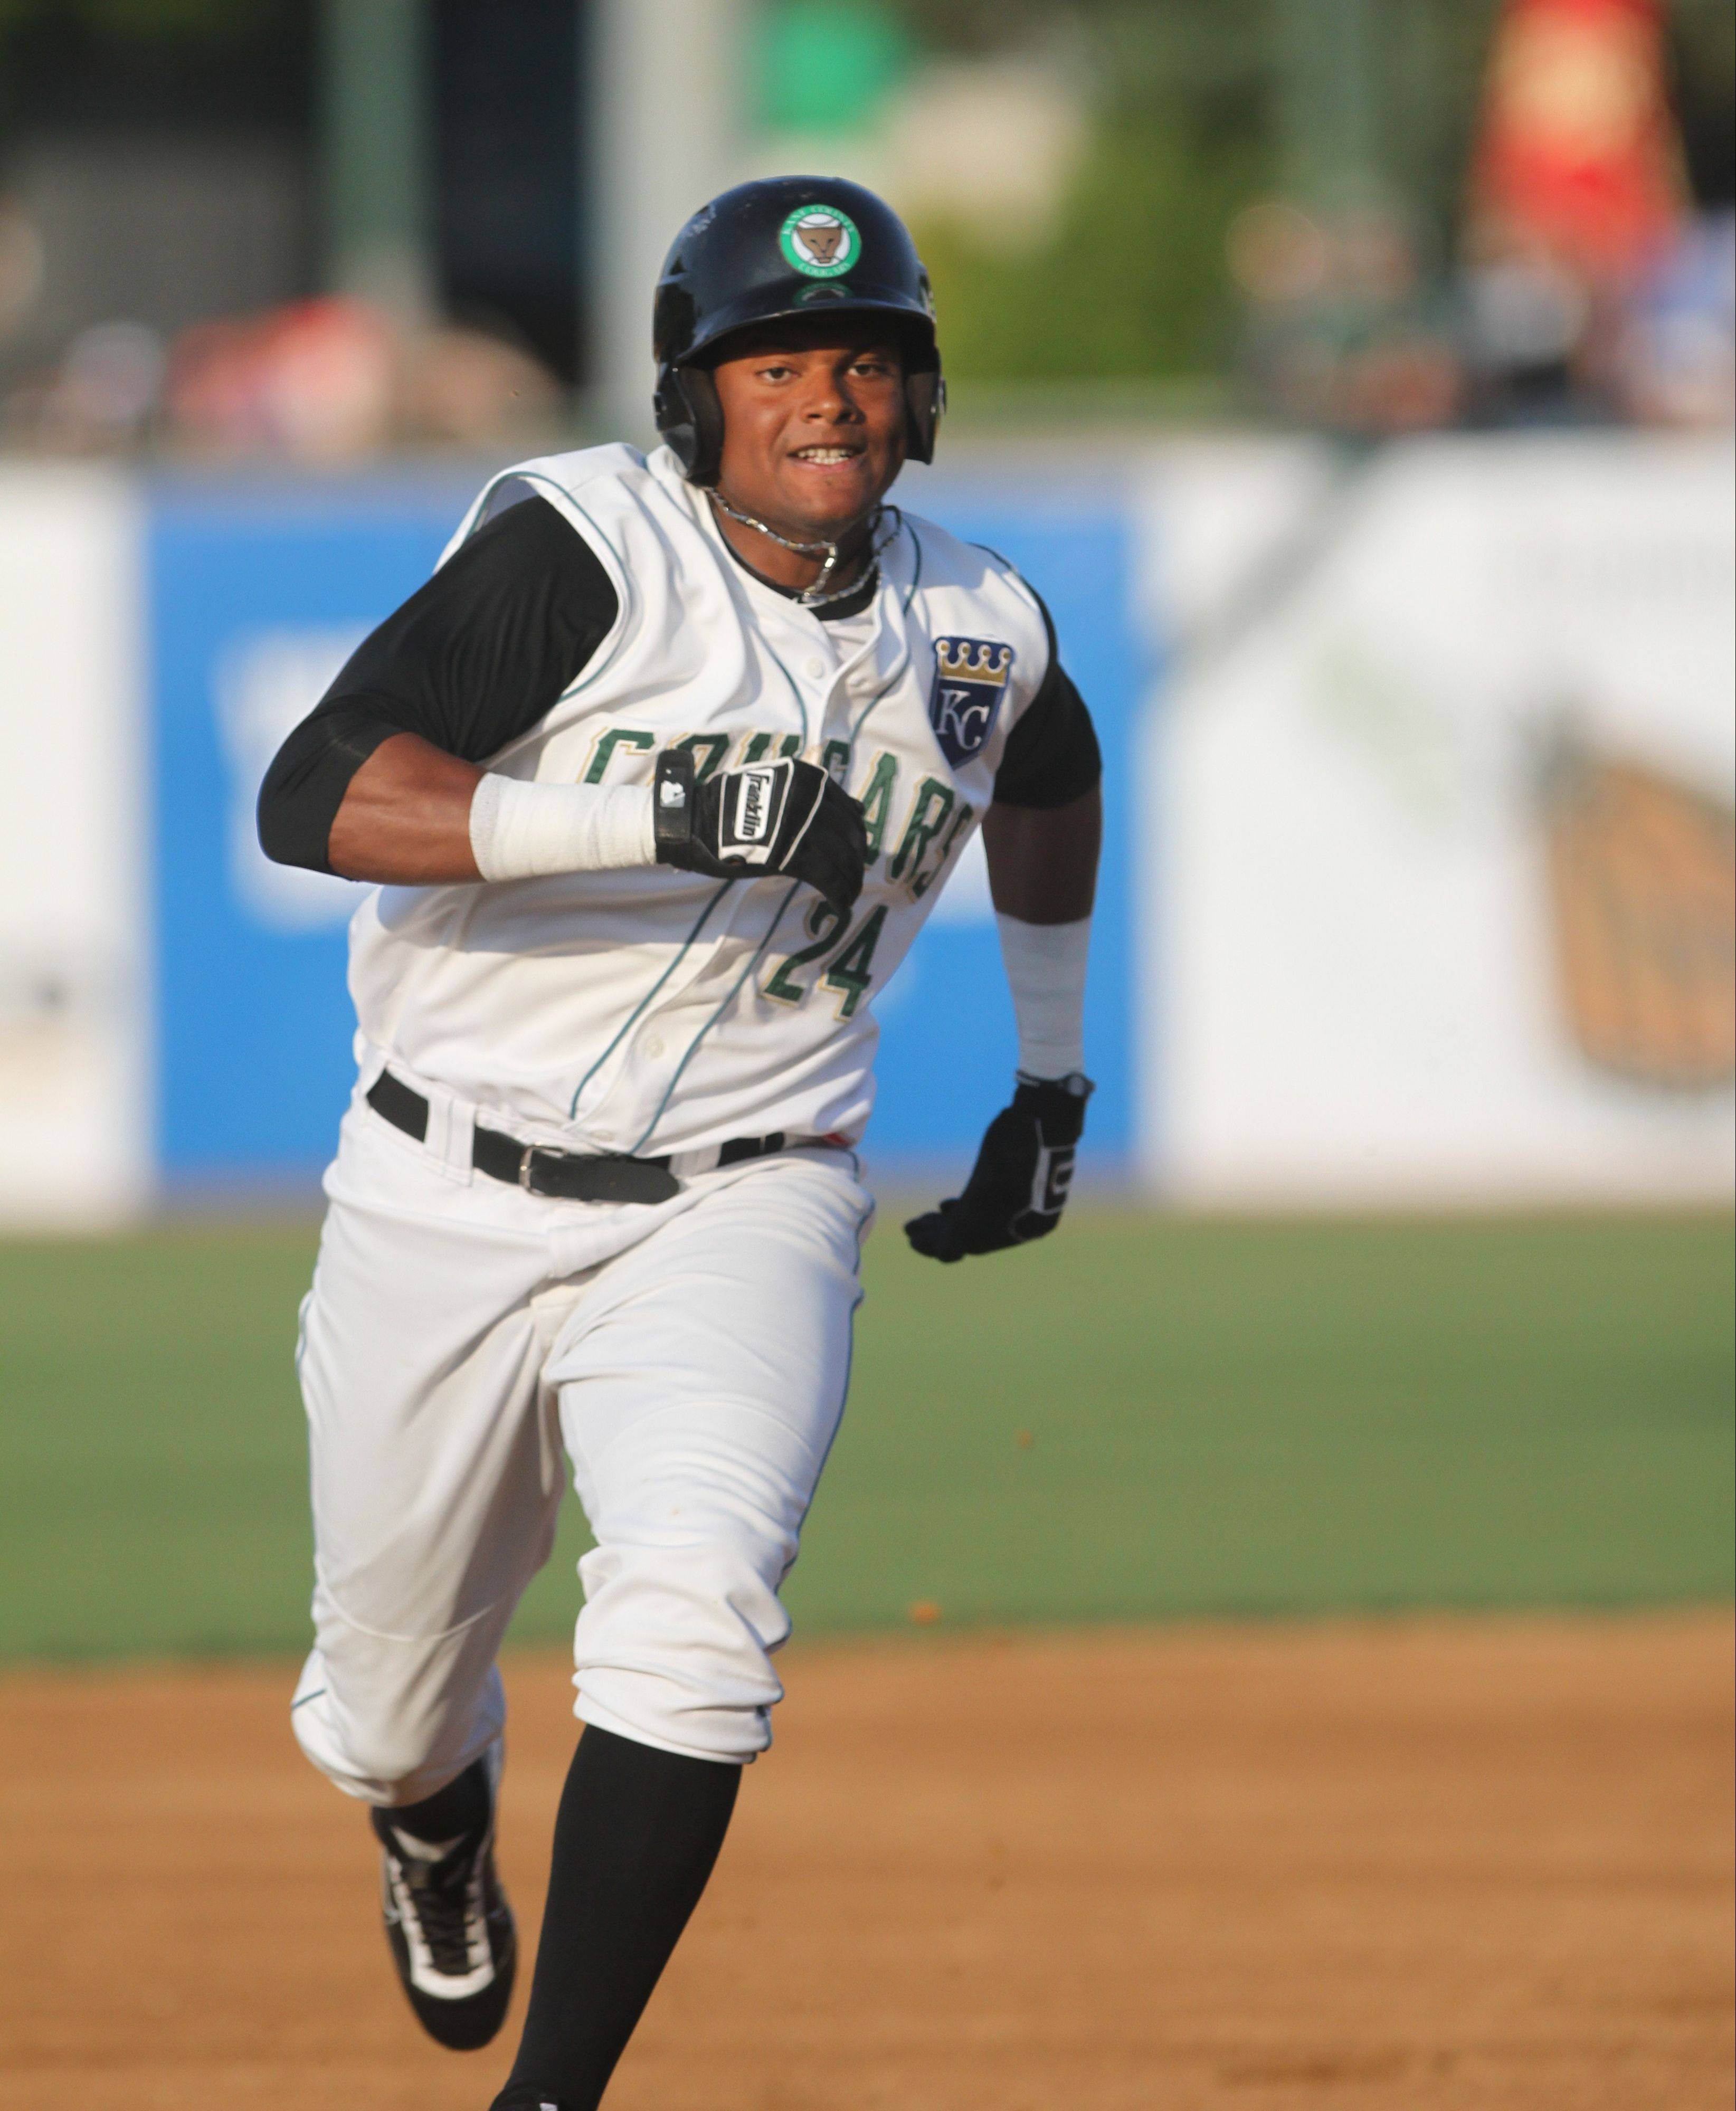 Kane County Cougars outfielder Jorge Bonifacio is the younger brother of Emilio Bonifacio, who plays for the Miami Marlins.